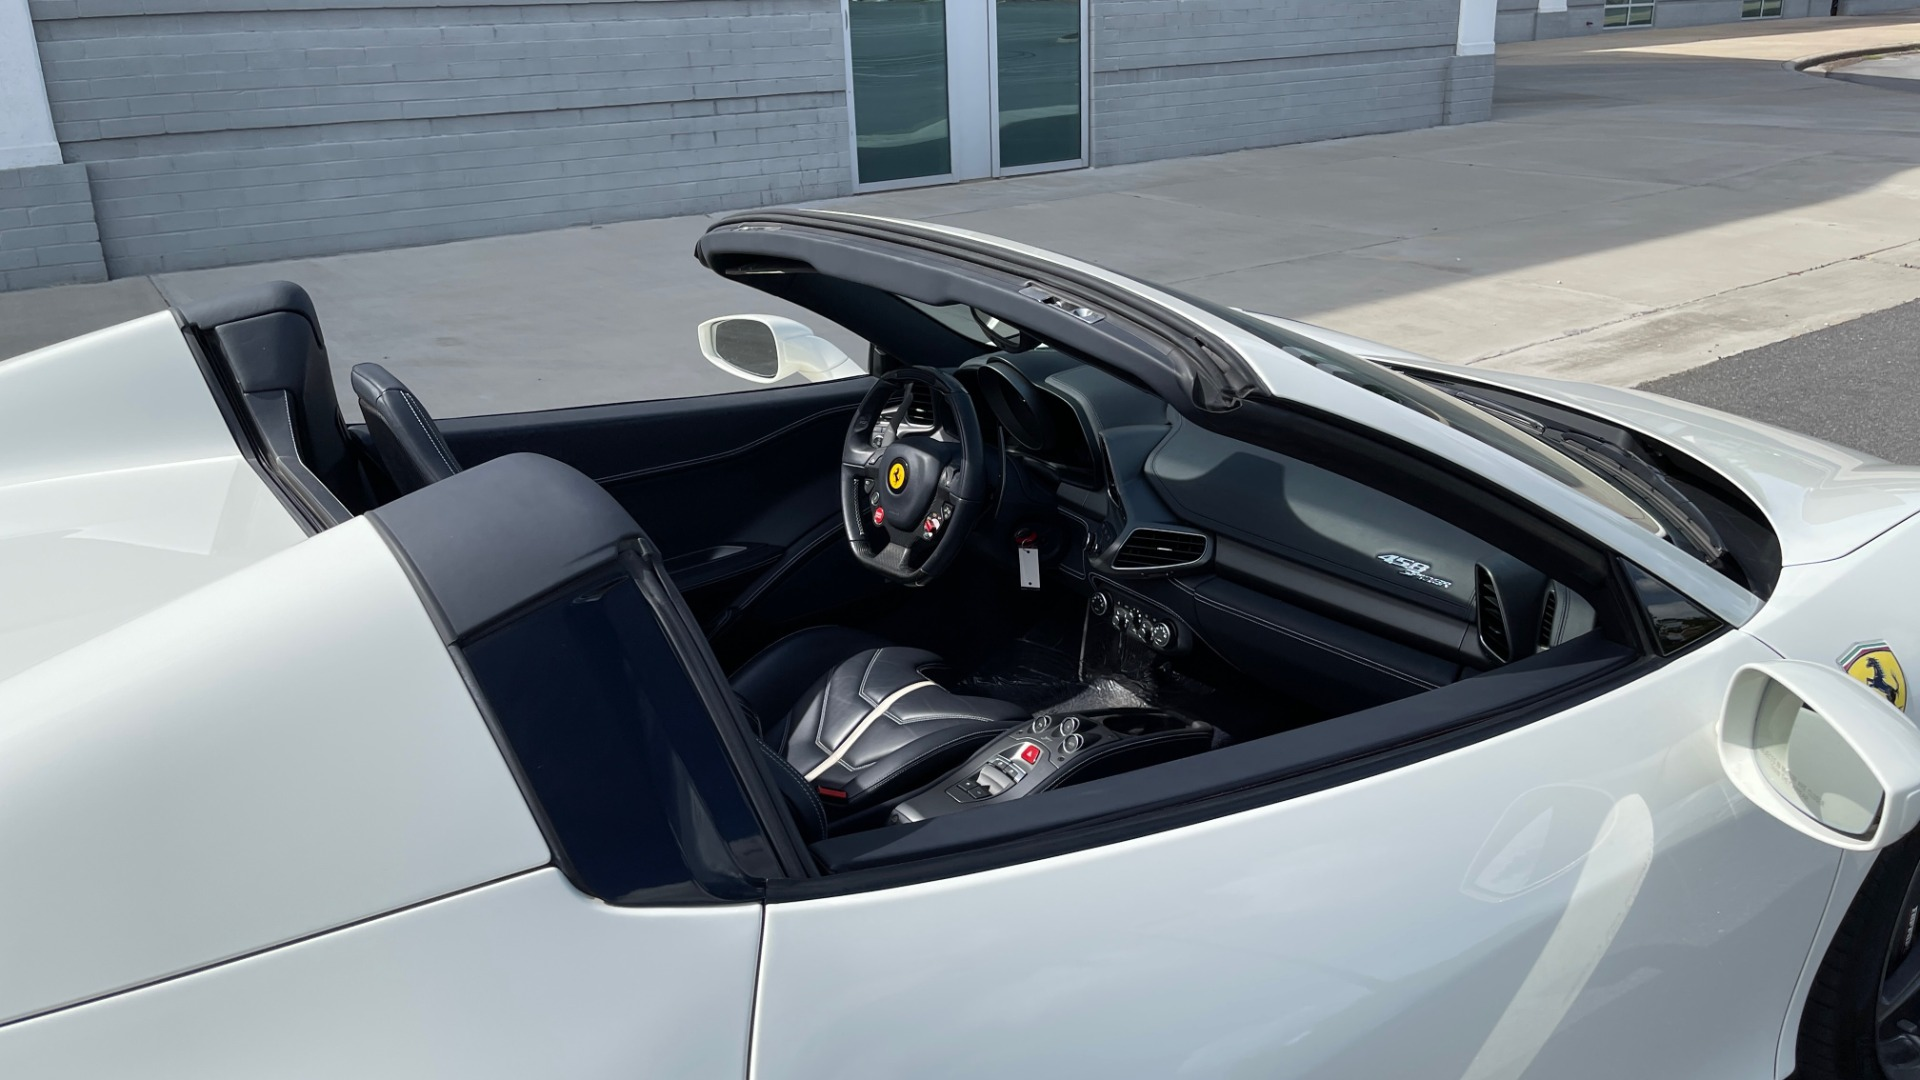 Used 2014 Ferrari 458 ITALIA SPIDER 570HP / F1 AUTO / CF SEATS / CARBON BRAKES / REARVIEW for sale $249,999 at Formula Imports in Charlotte NC 28227 12